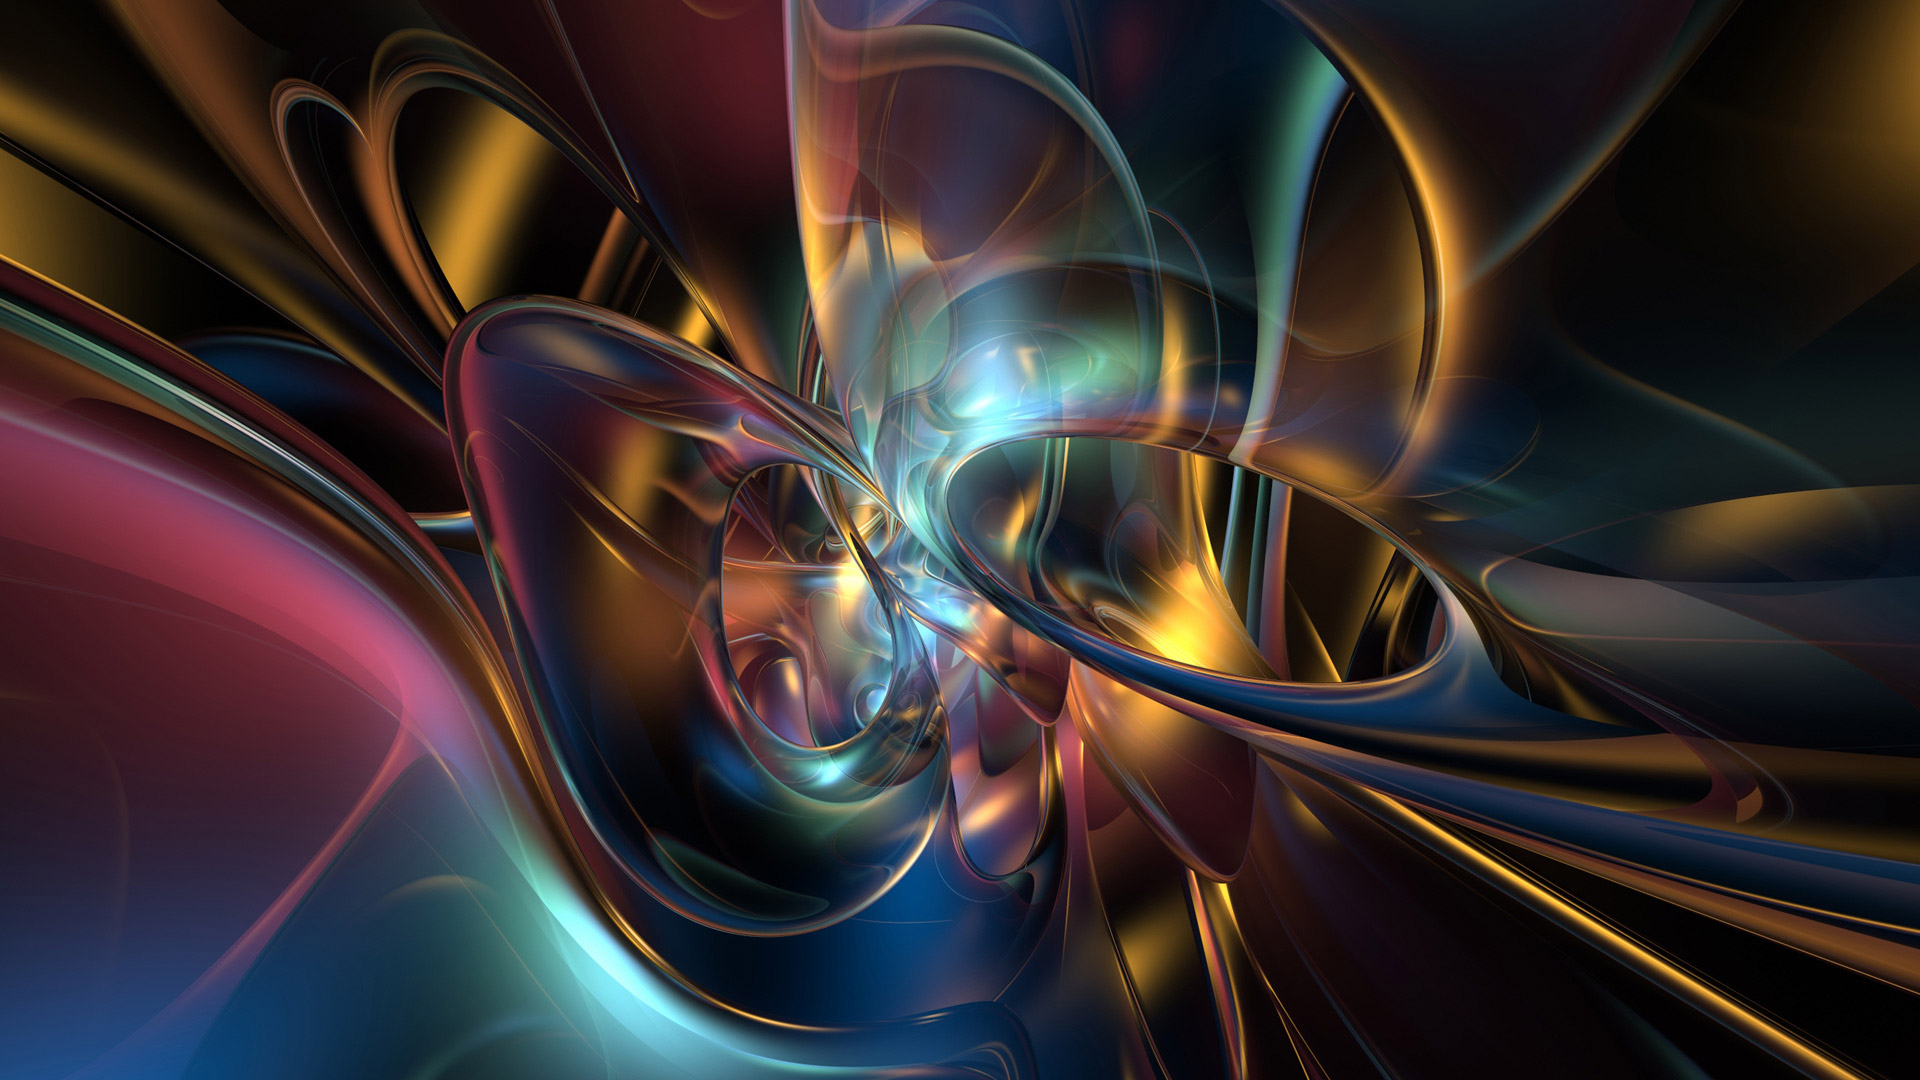 Abstract Design 1080p Wallpapers HD Wallpapers 1920x1080